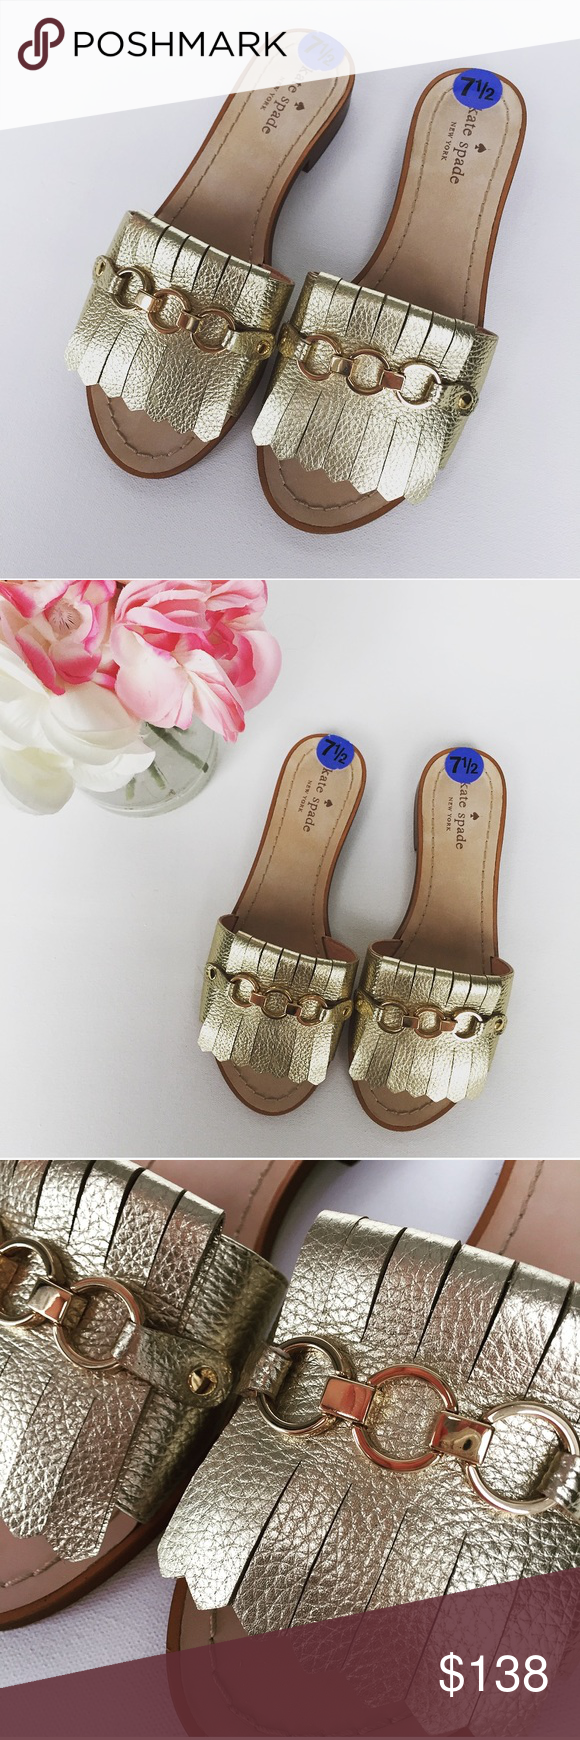 7d461932f New Kate Spade Brie Gold Leather Sandals This Unique Slide Is